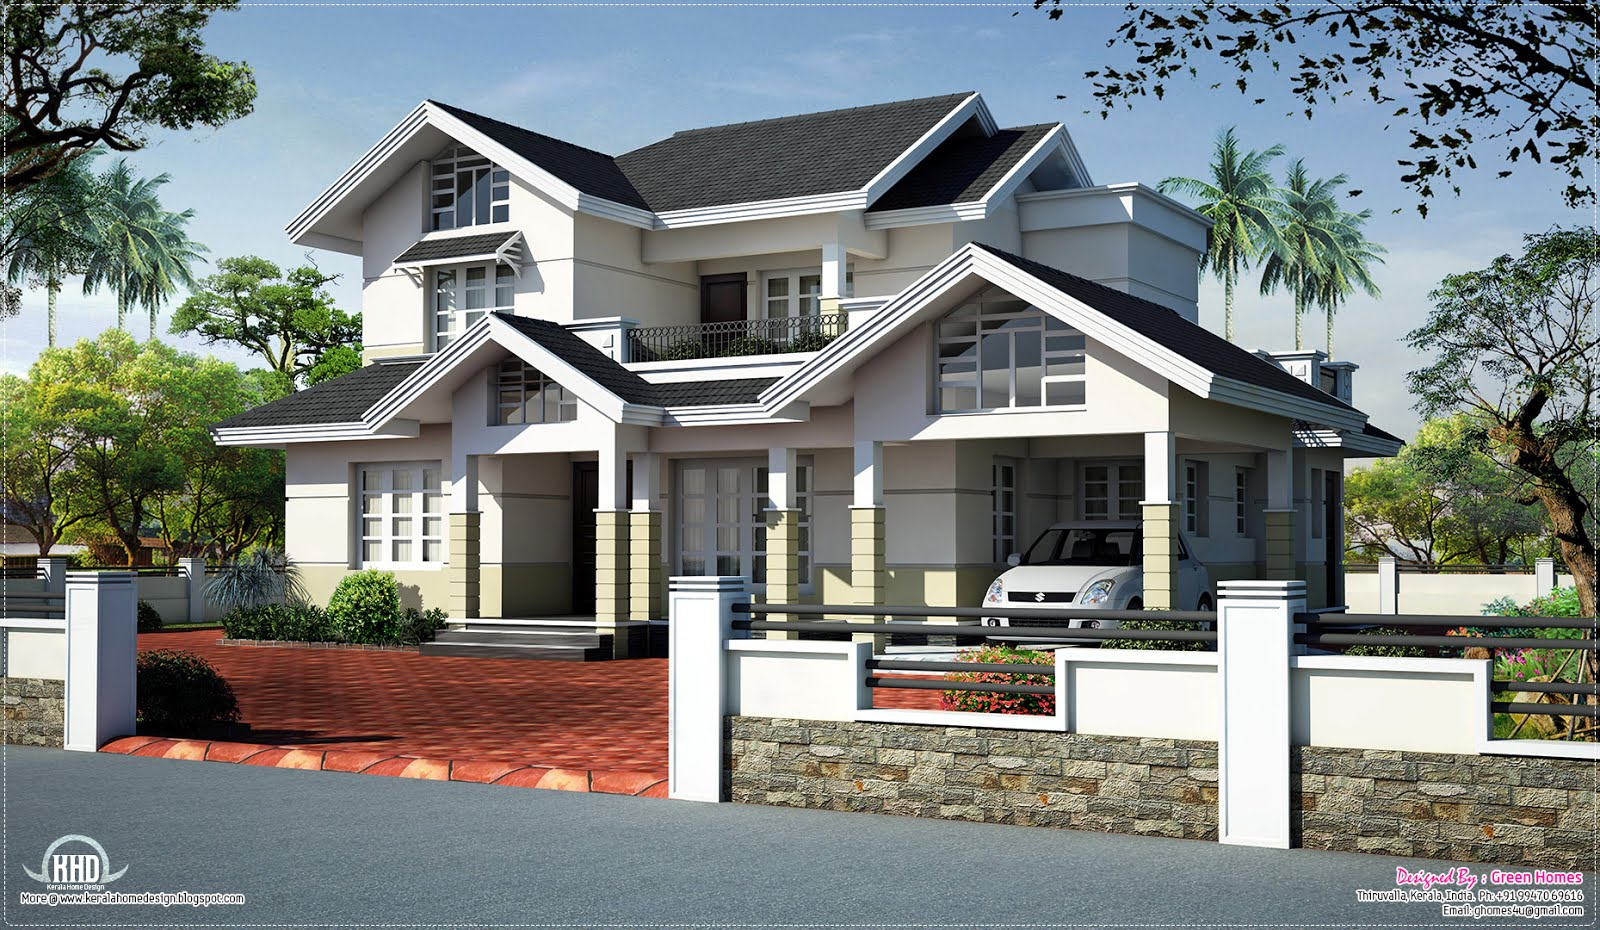 House Style Roof : Sloped roof house elevation design kerala home